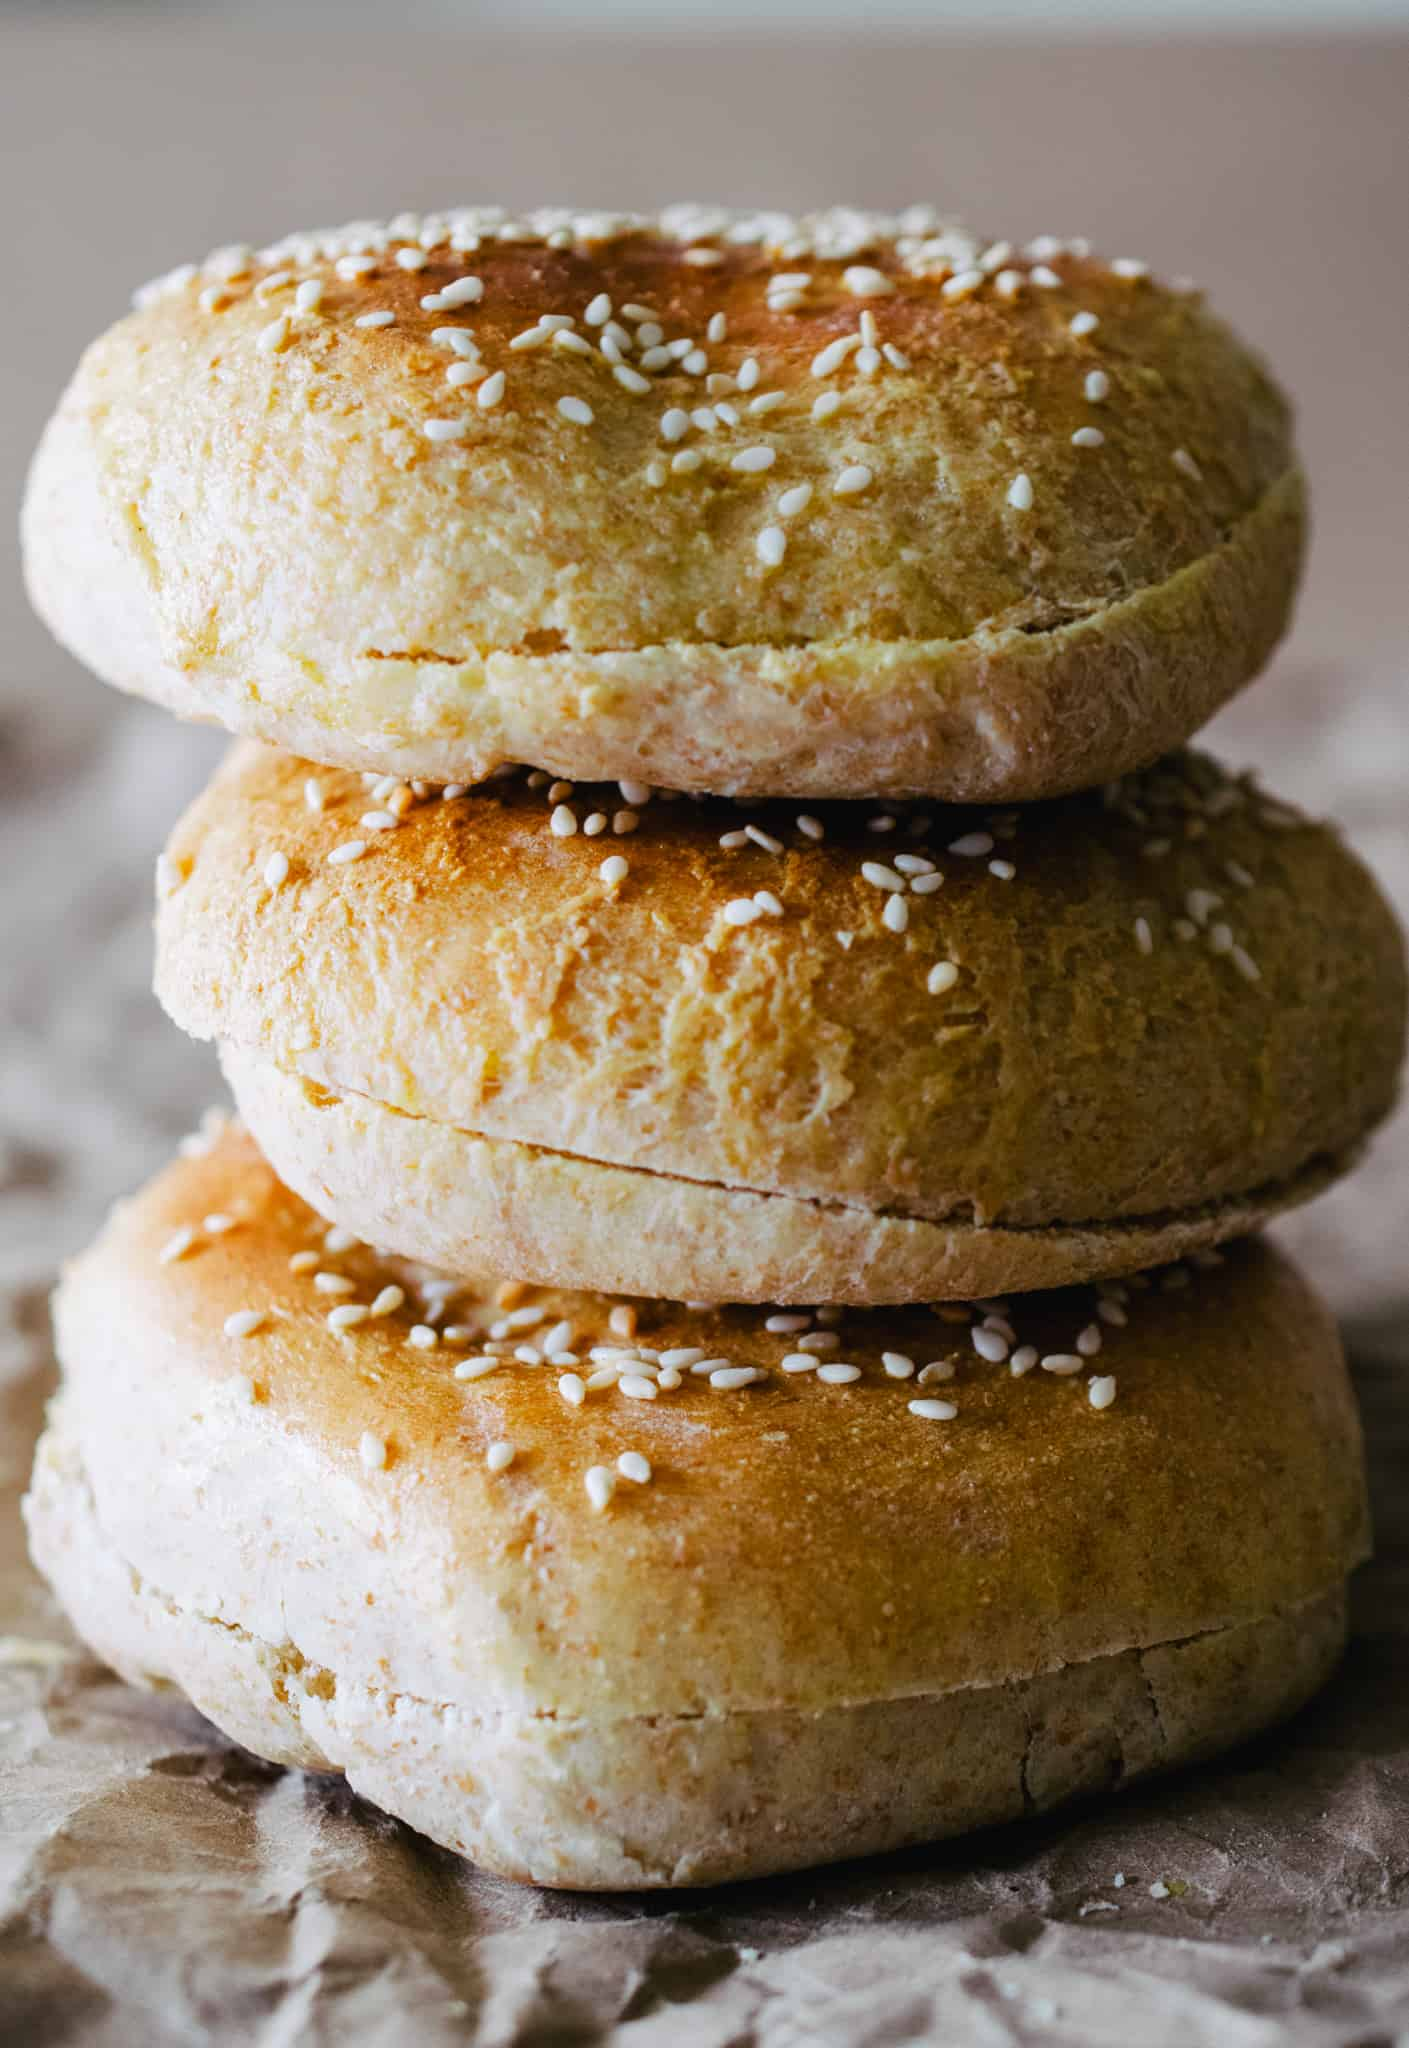 3 homemade sesame seed hamburger buns stacked on top of each other on brown paper surface and background